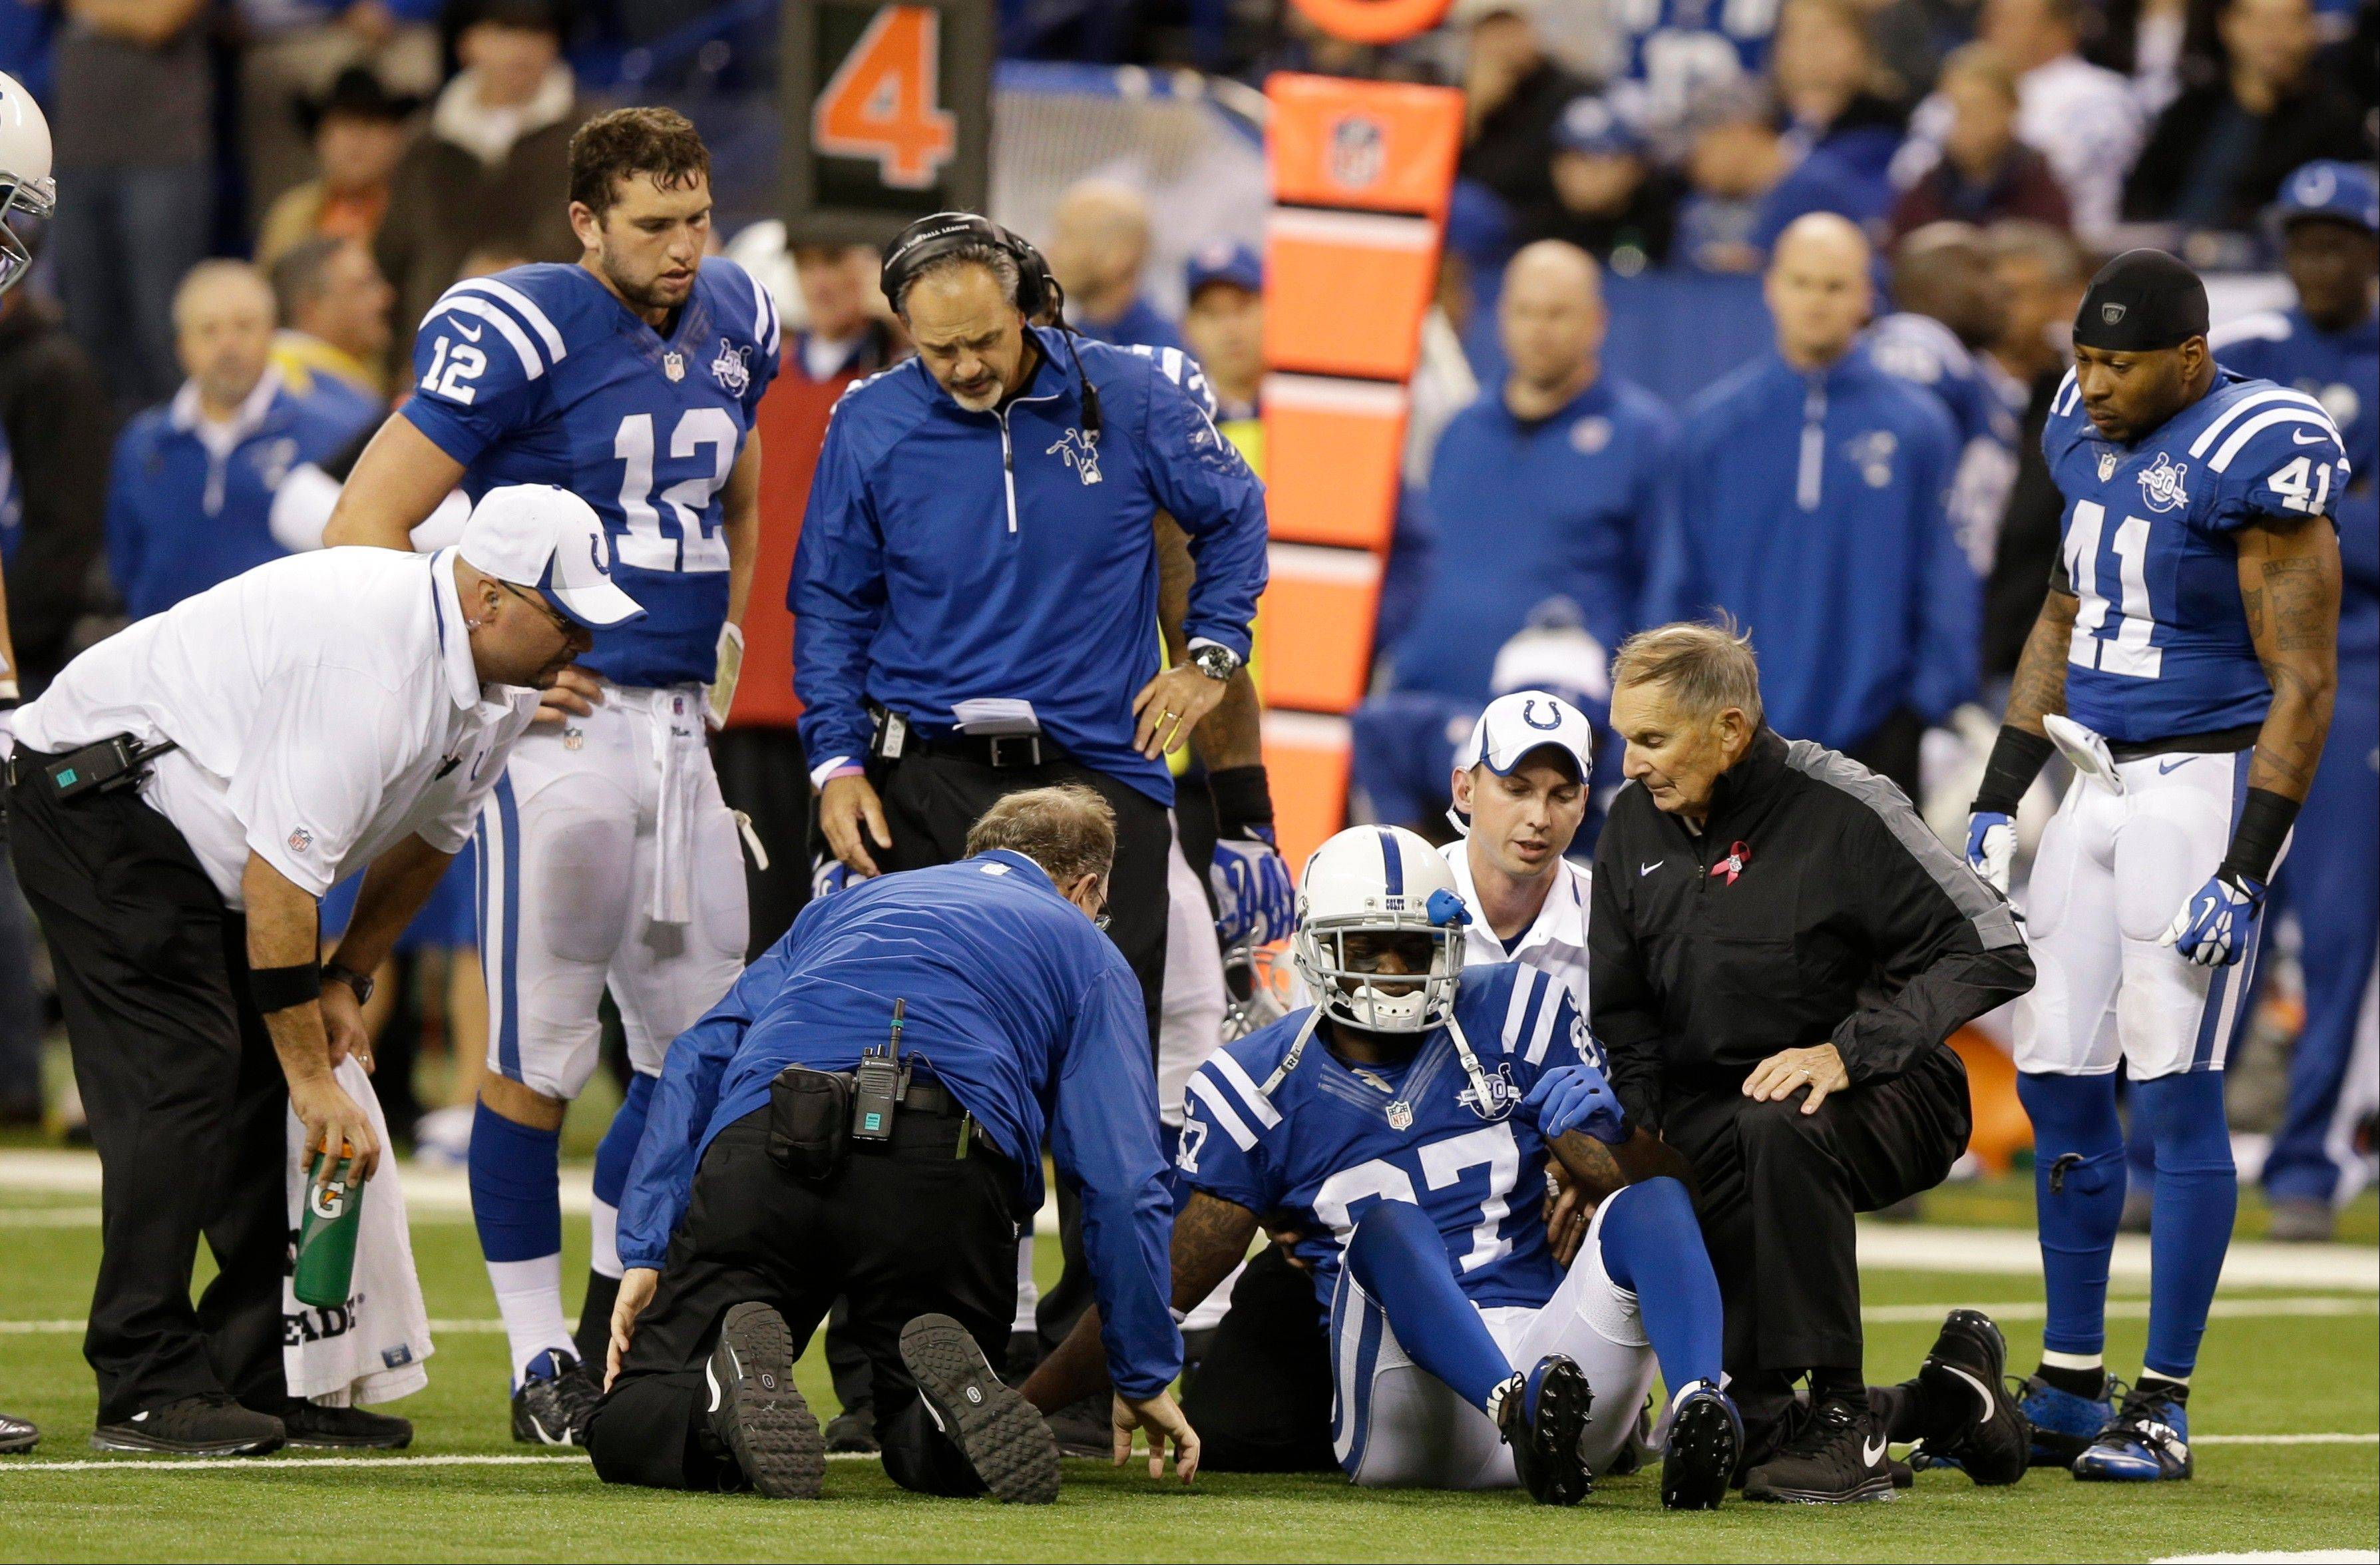 Colts lose Wayne to season-ending knee injury